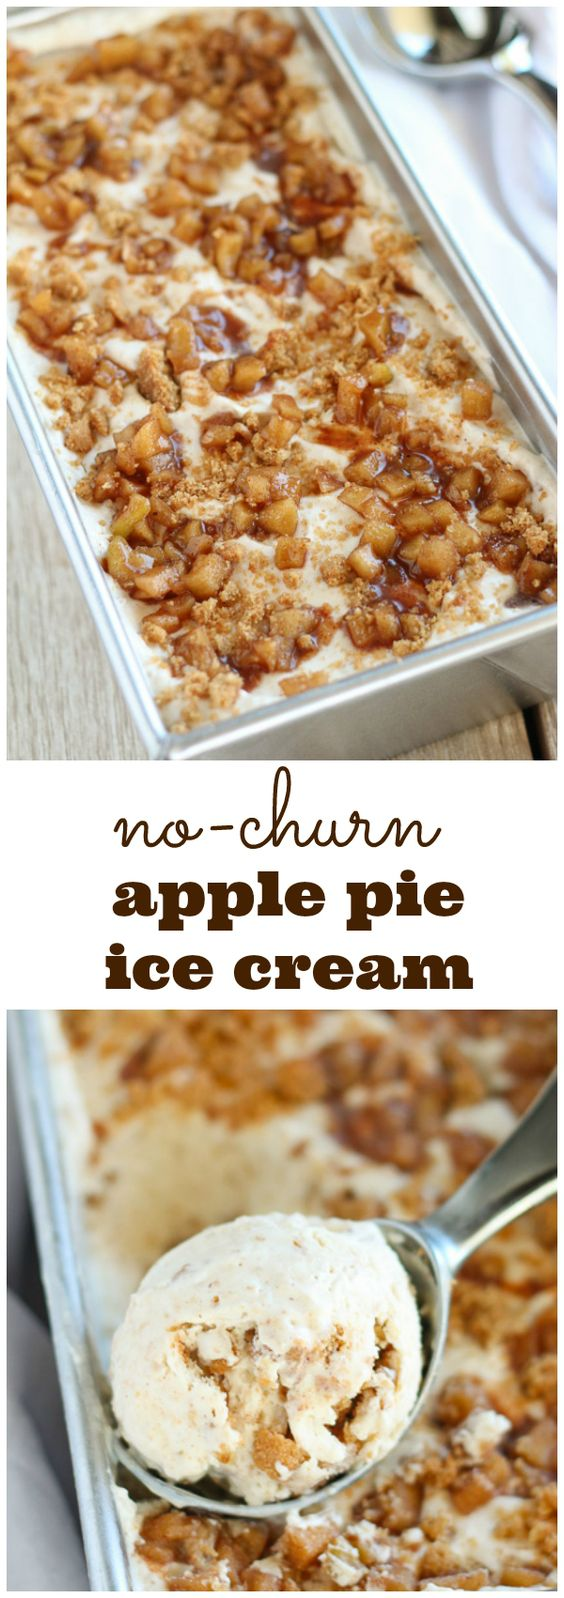 No Churn Apple Pie Ice Cream - Smooth and creamy ice cream filled with ...